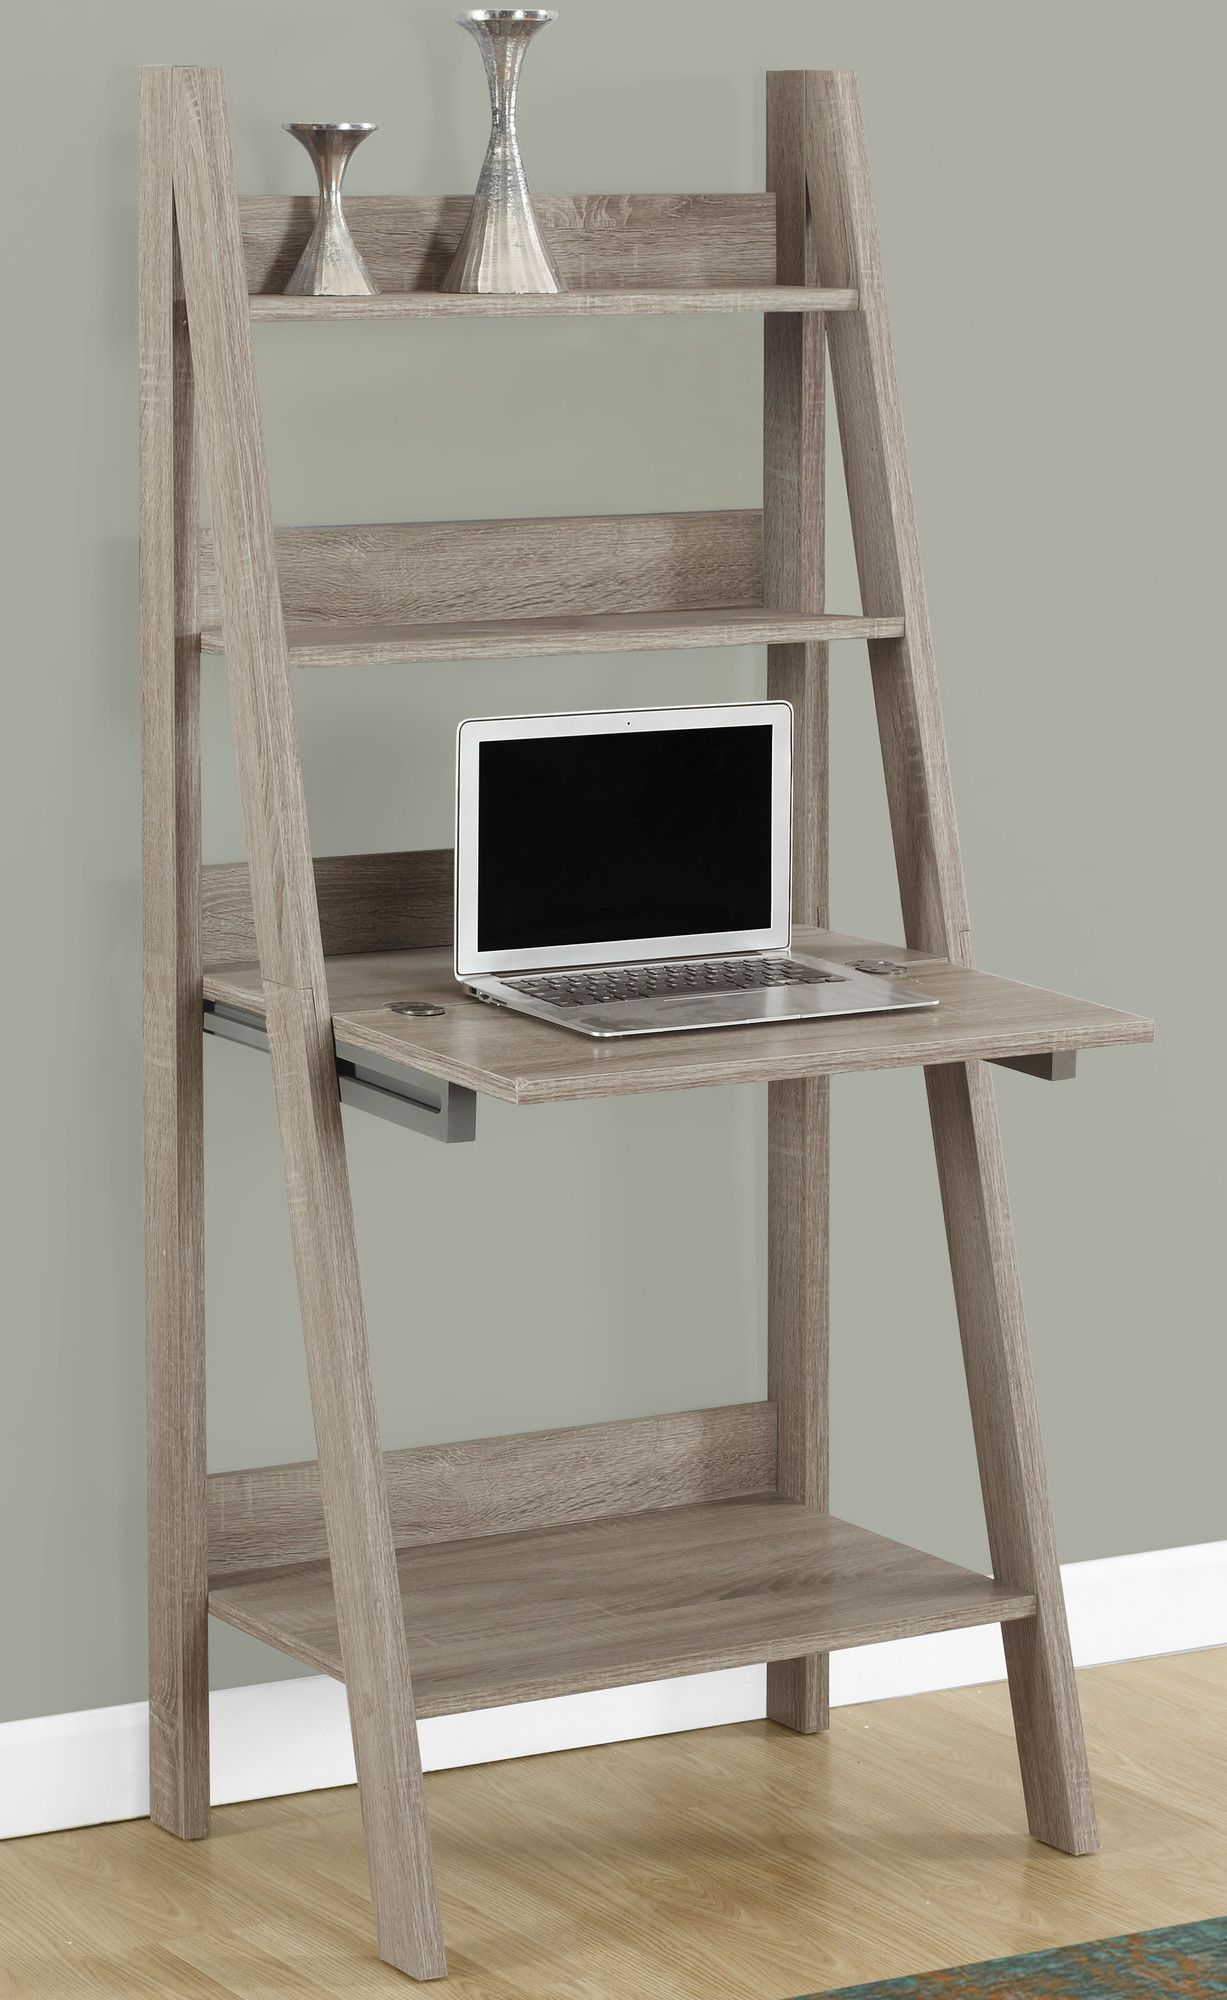 Ladder desk small spaces shelving and storage ideas